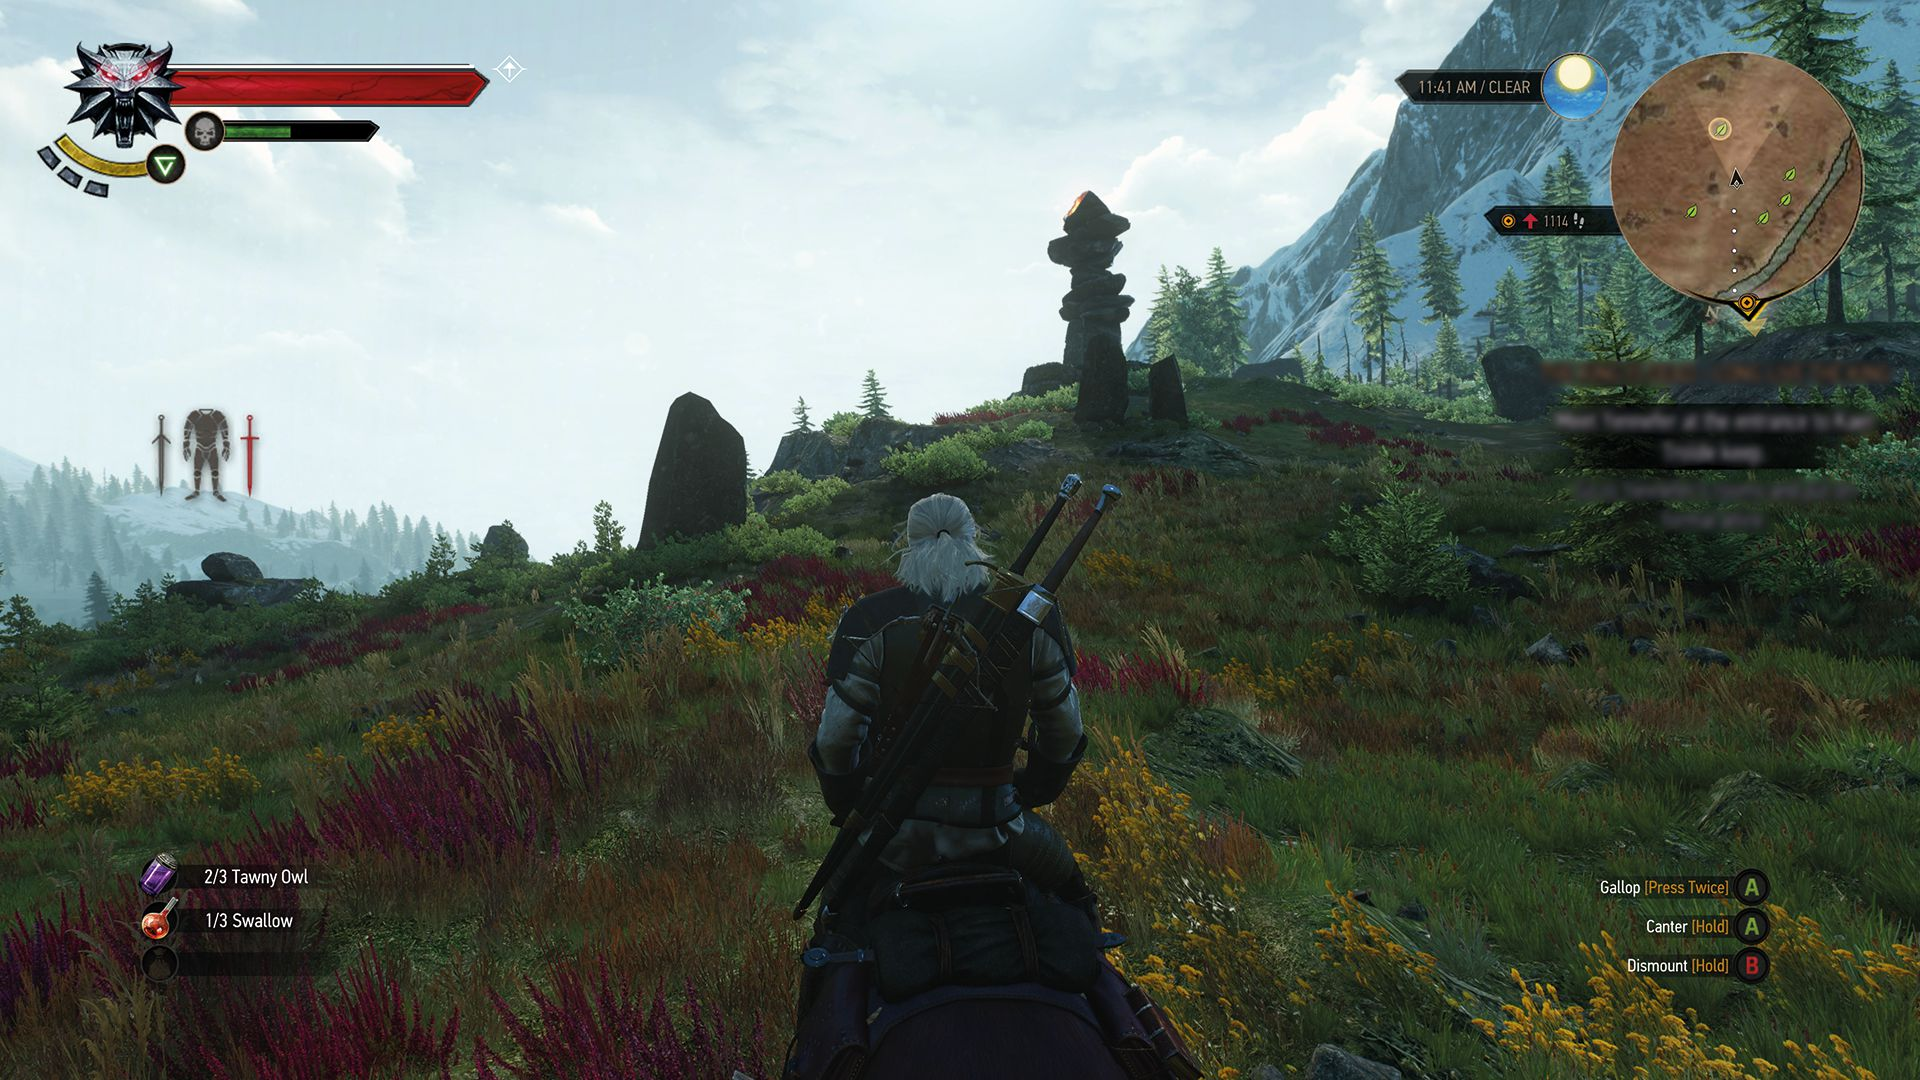 the_witcher_3_wild_hunt_ancient_faiths_amidst_fresh_flowers_1430900890